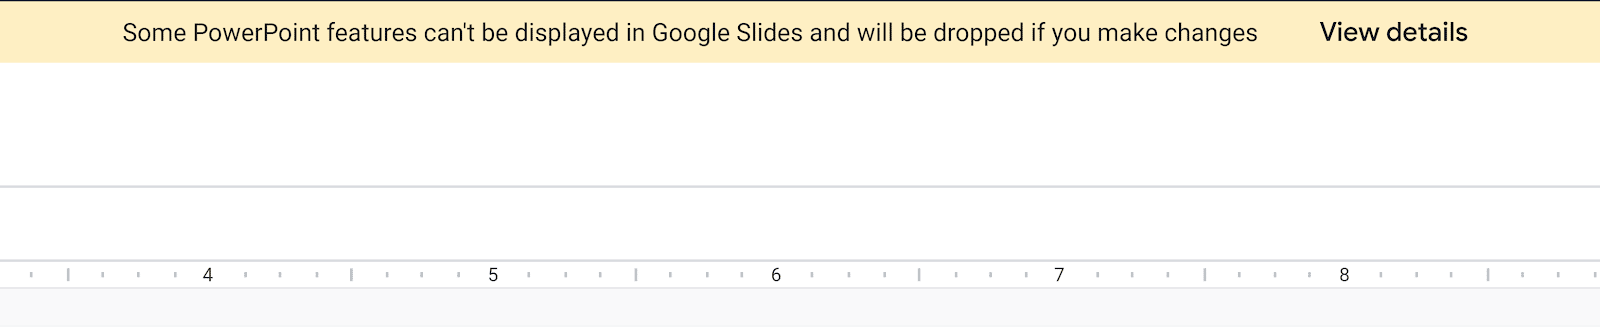 Google Slides Compatibility with PowerPoint